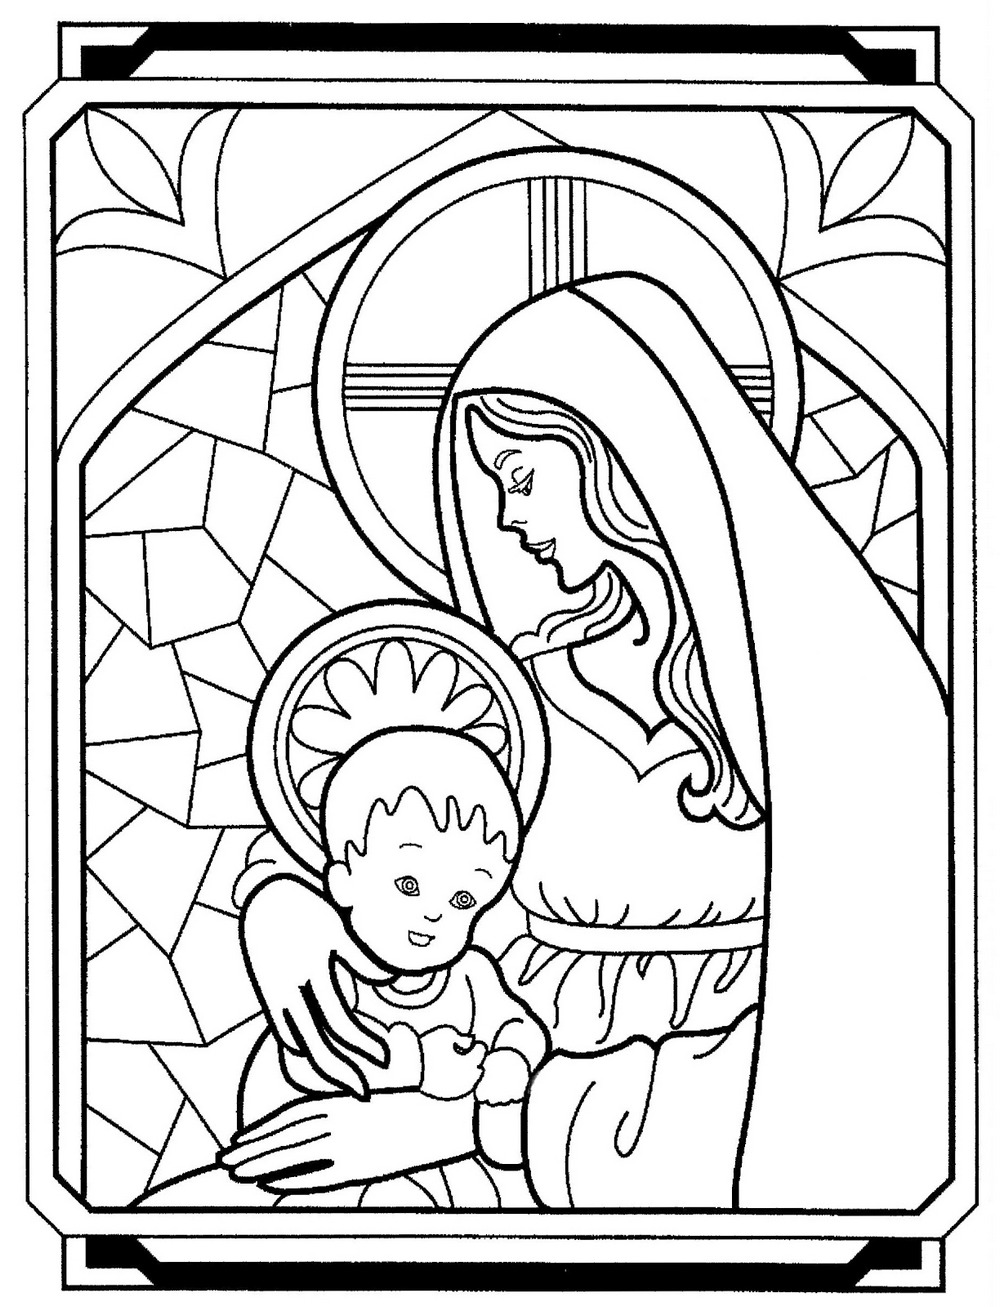 mary coloring pages mother mary coloring page at getcoloringscom free mary coloring pages